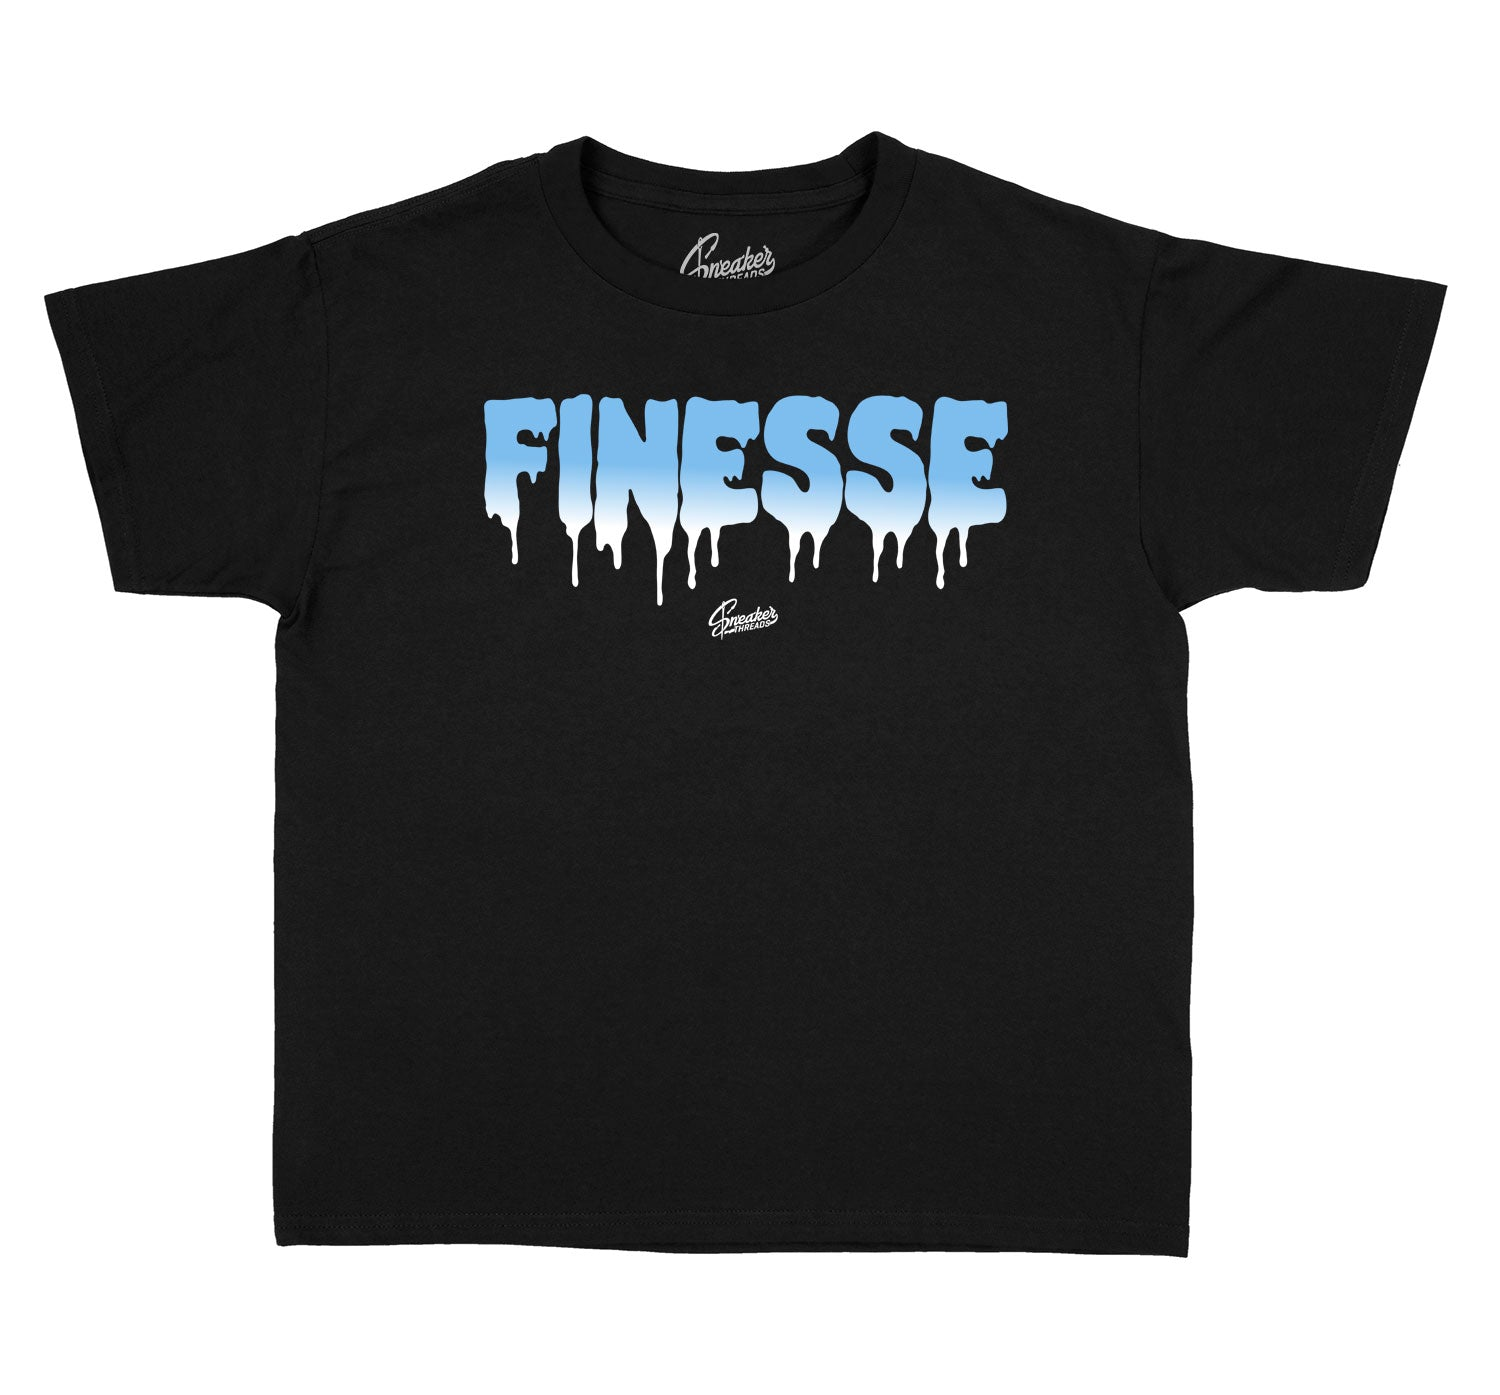 Kids University Blue 1 Shirt - Finesse - Black